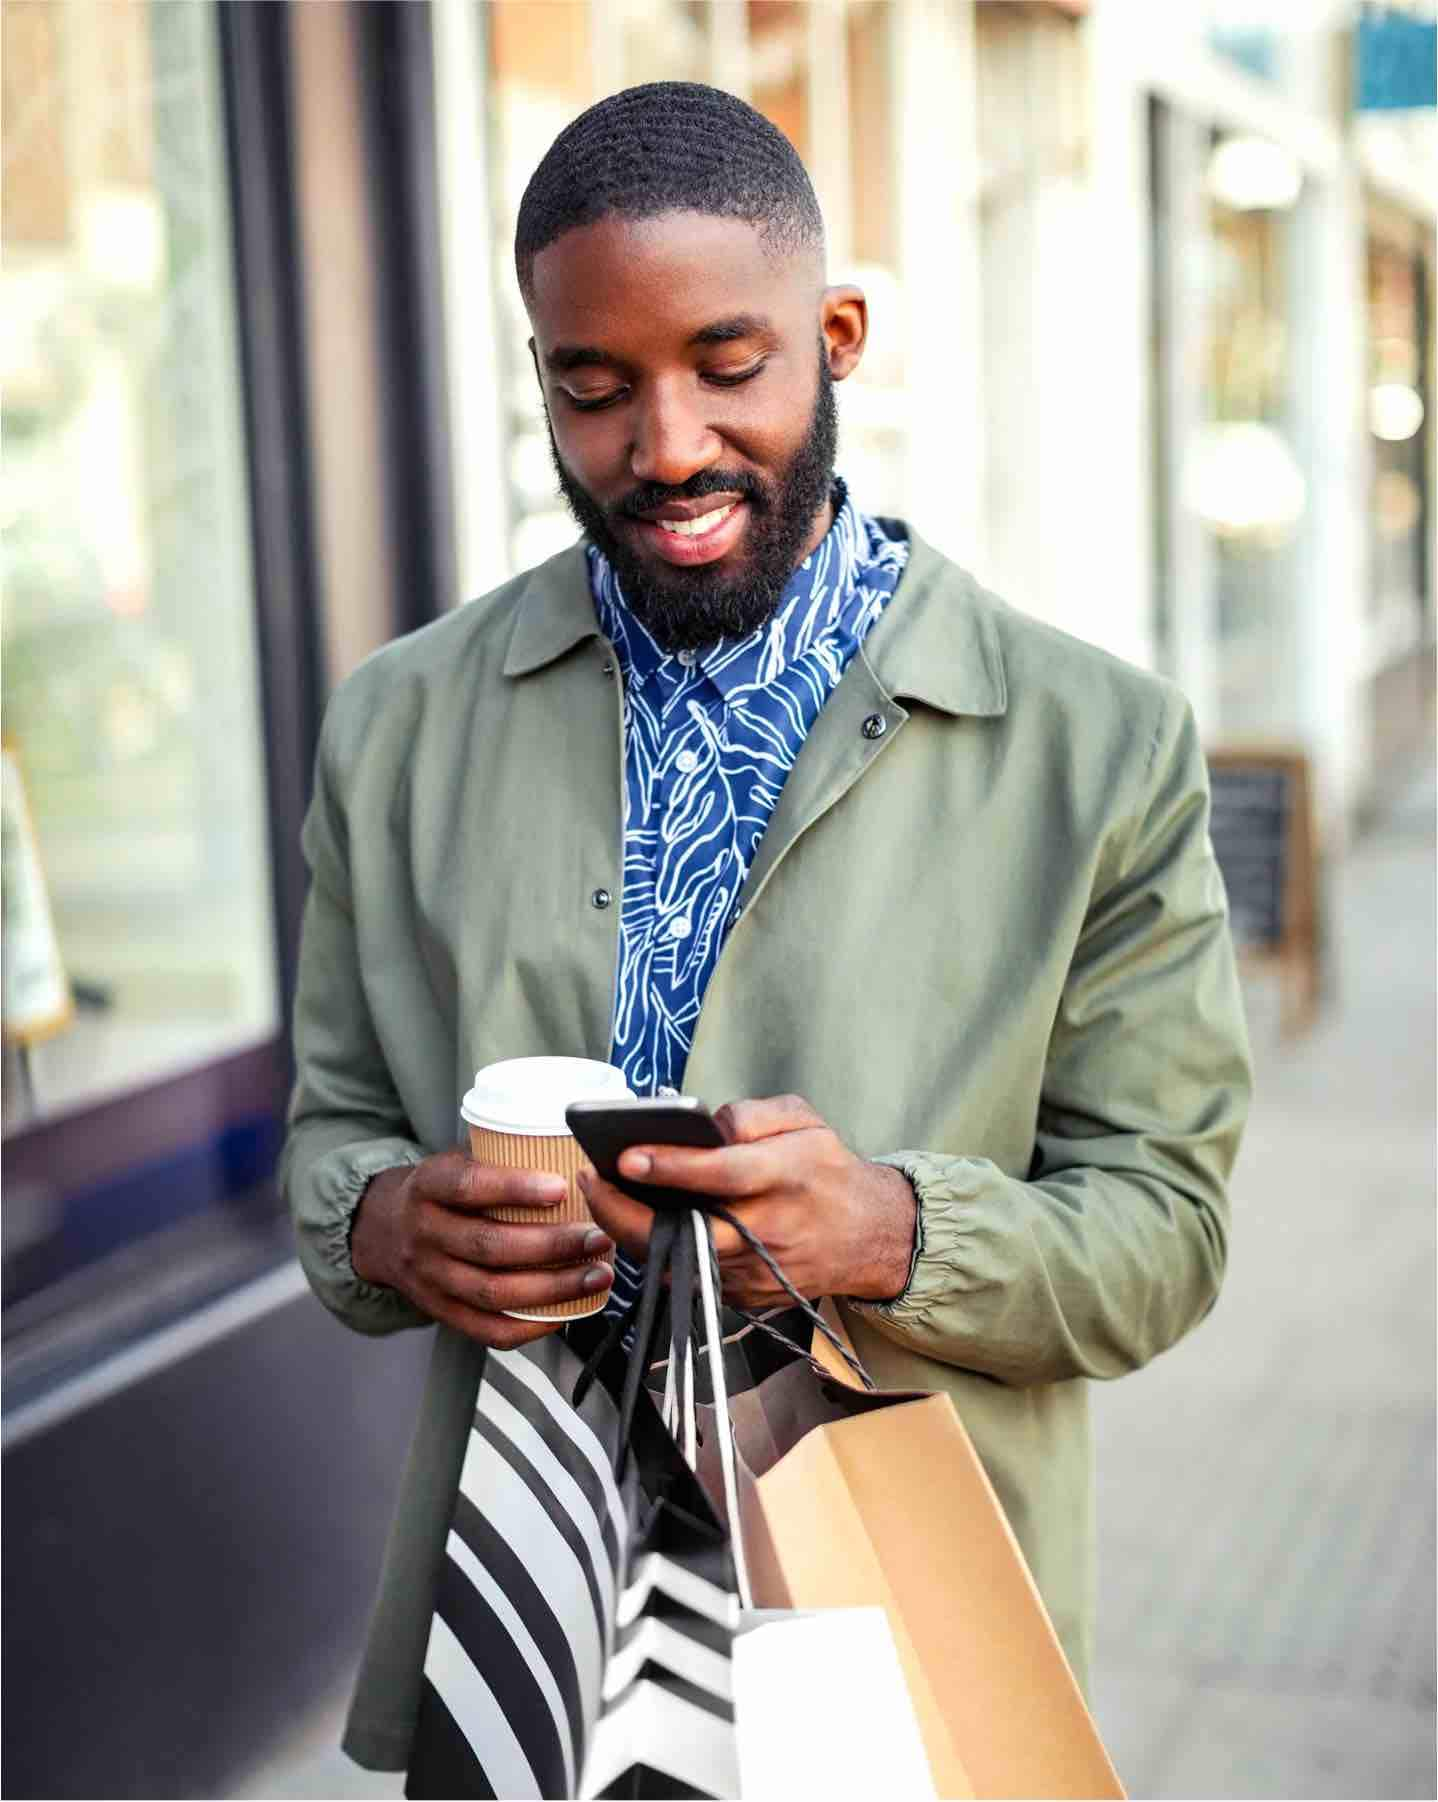 A man walking outside carrying shopping bags and looking at their phone